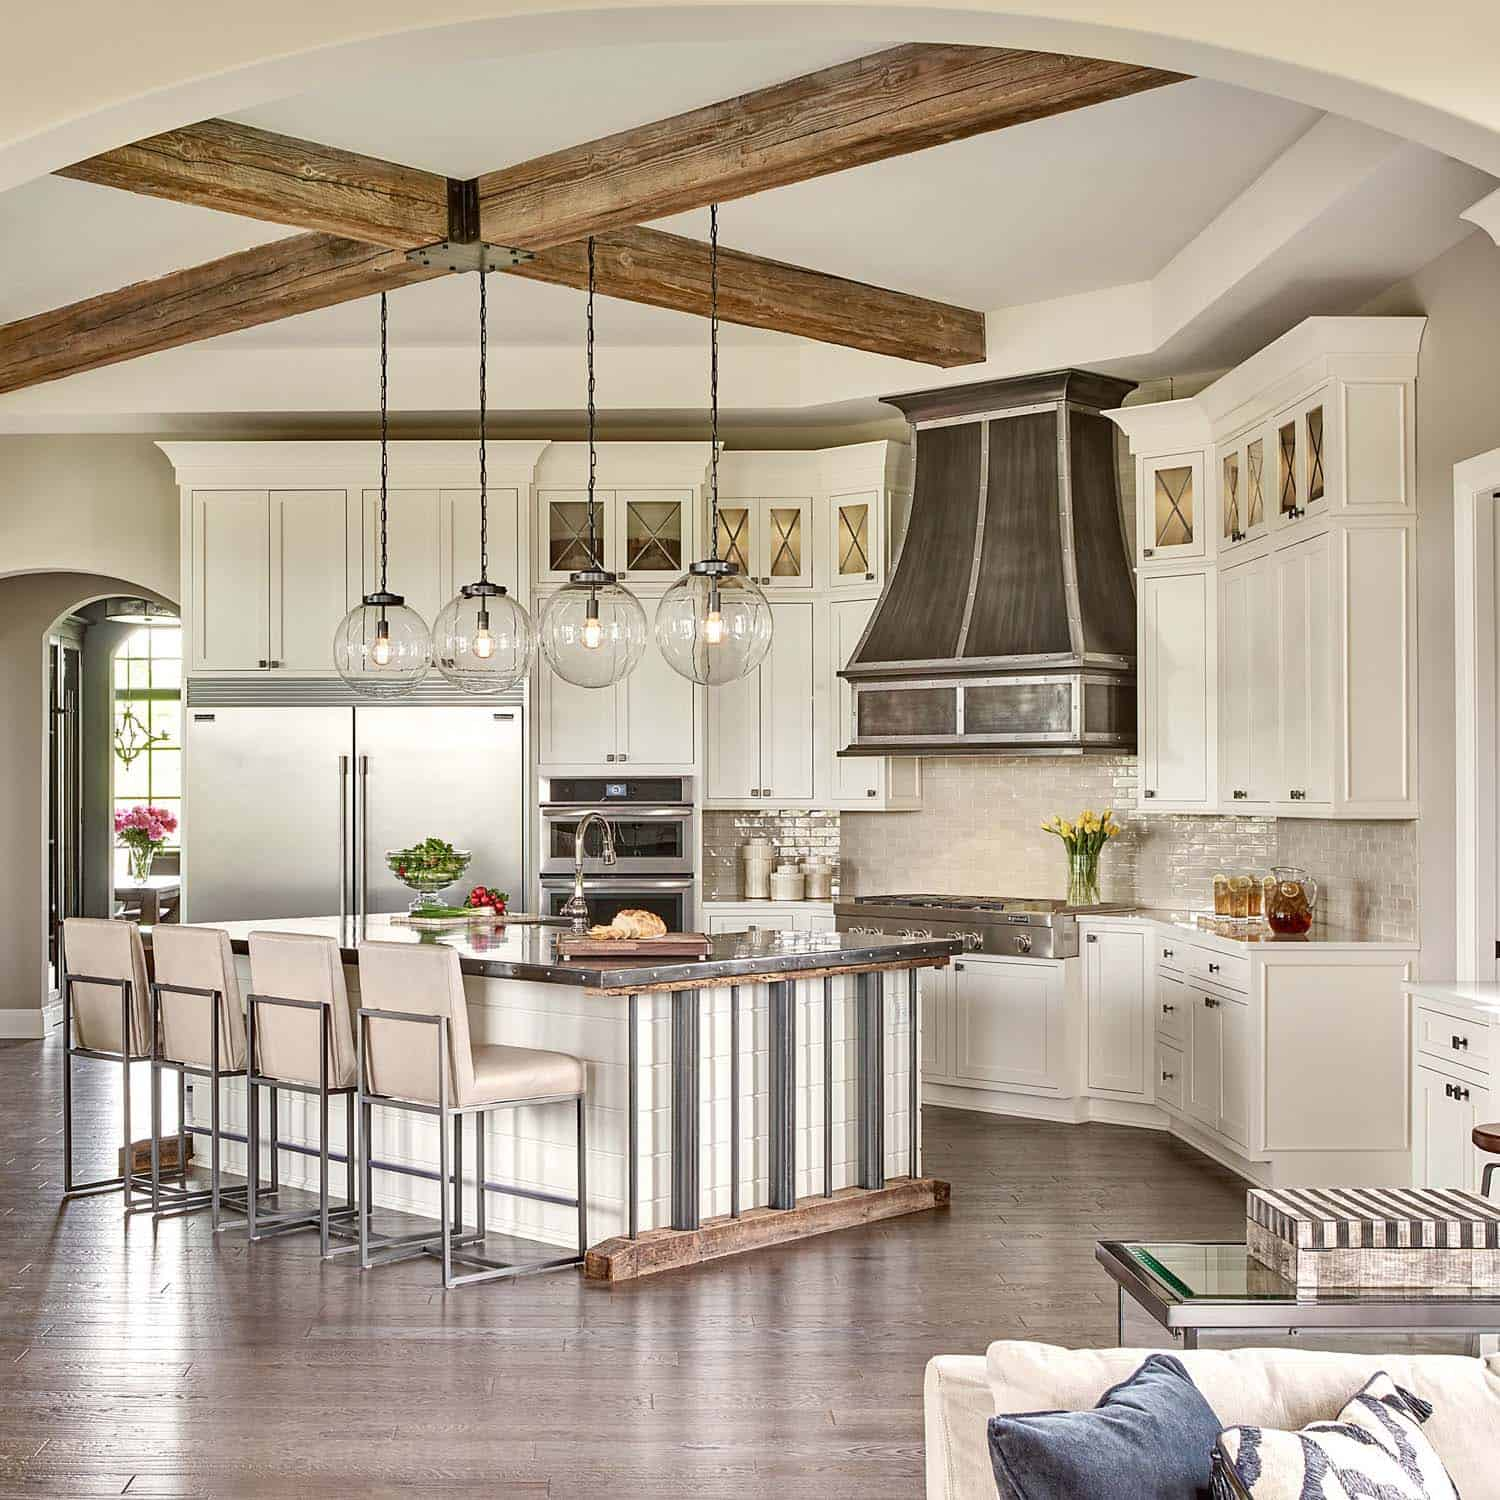 Home Interior Lighting: Restoration Hardware Styled Model Home With Gorgeous